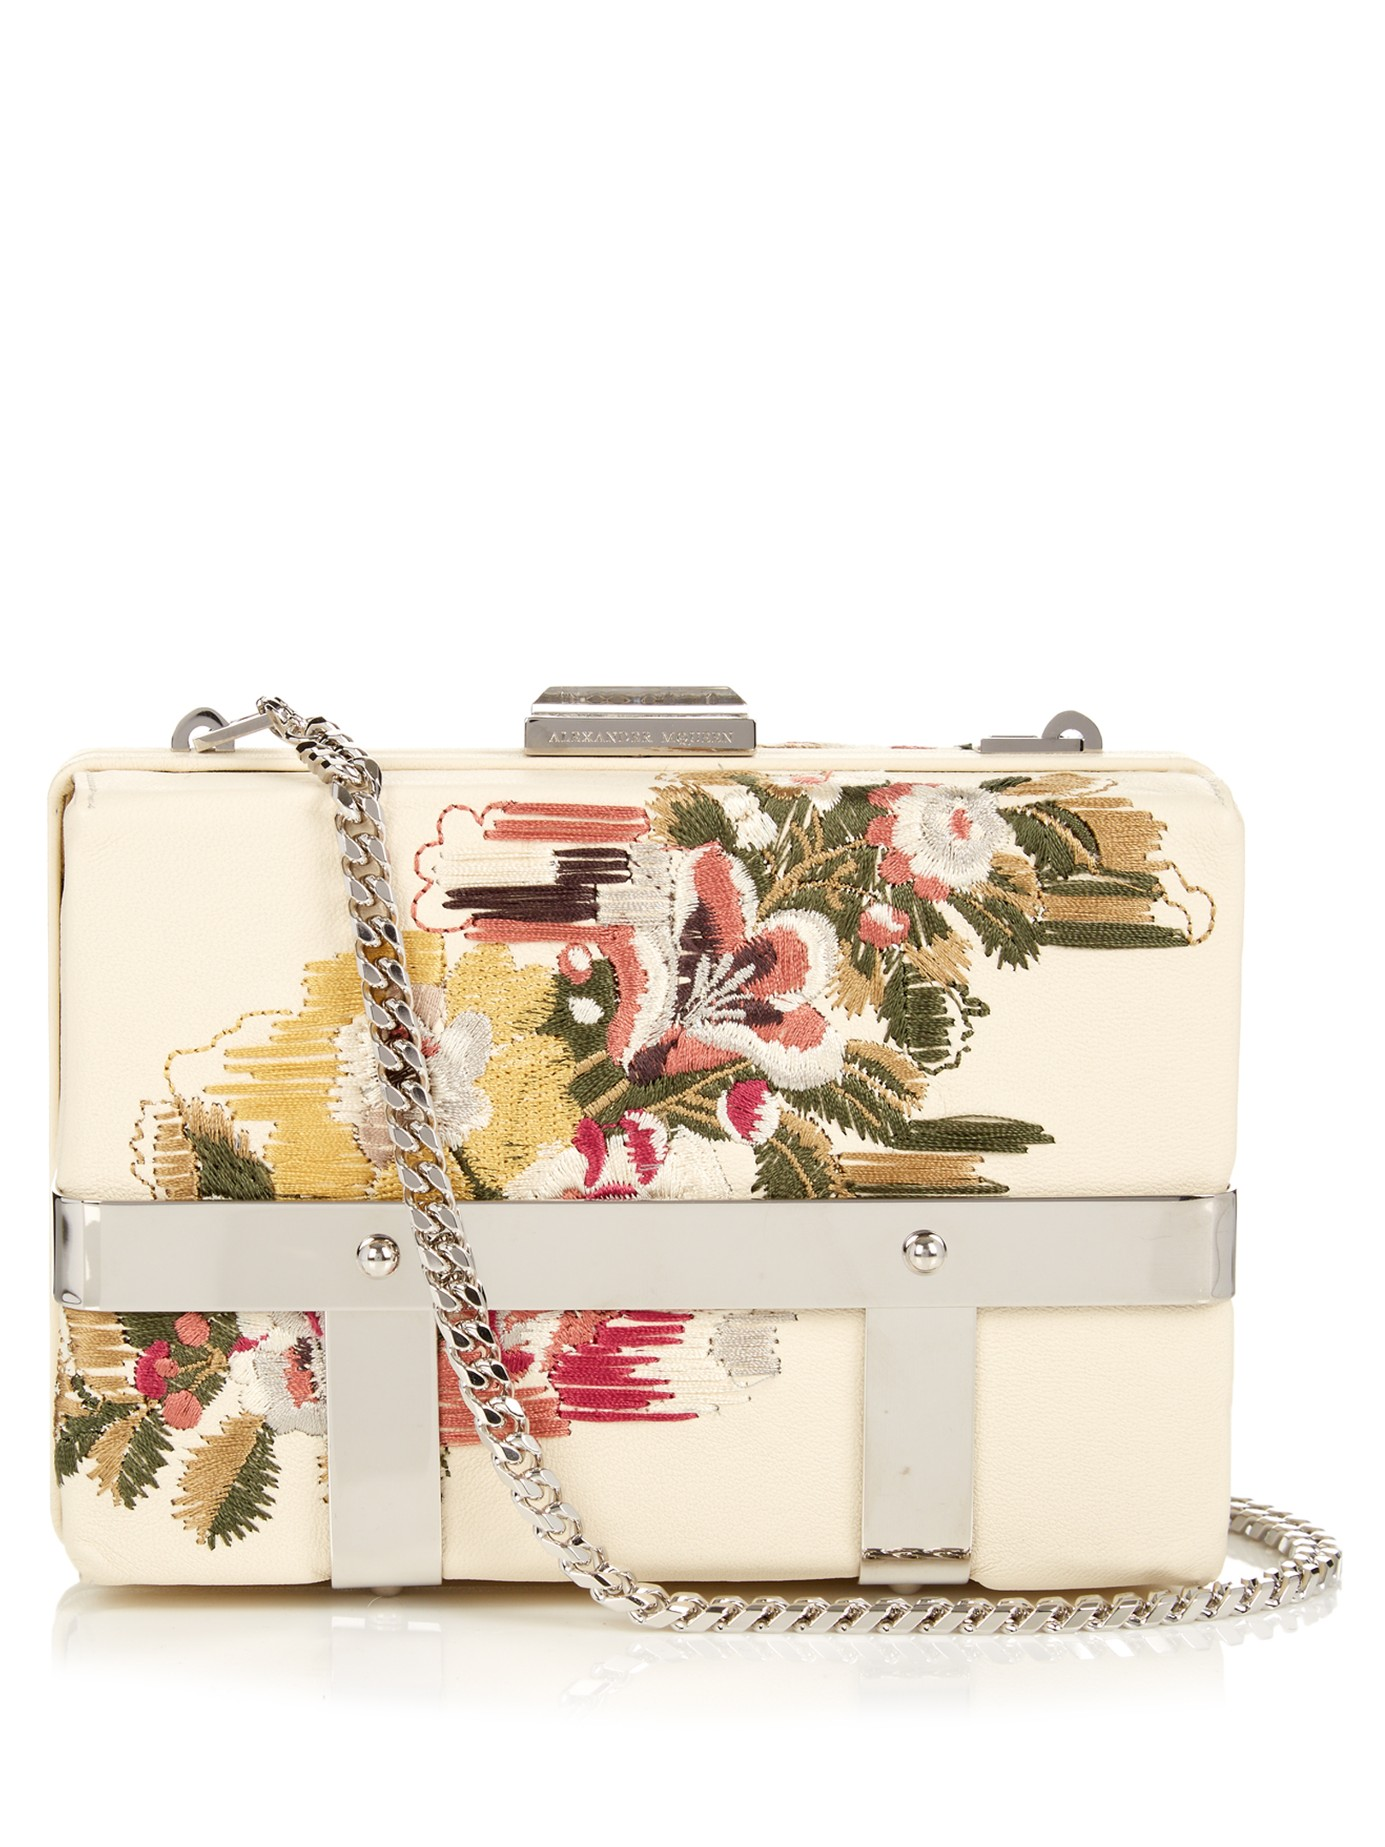 ALEXANDER MCQUEEN FLORAL EMBROIDERED CAGED BAG